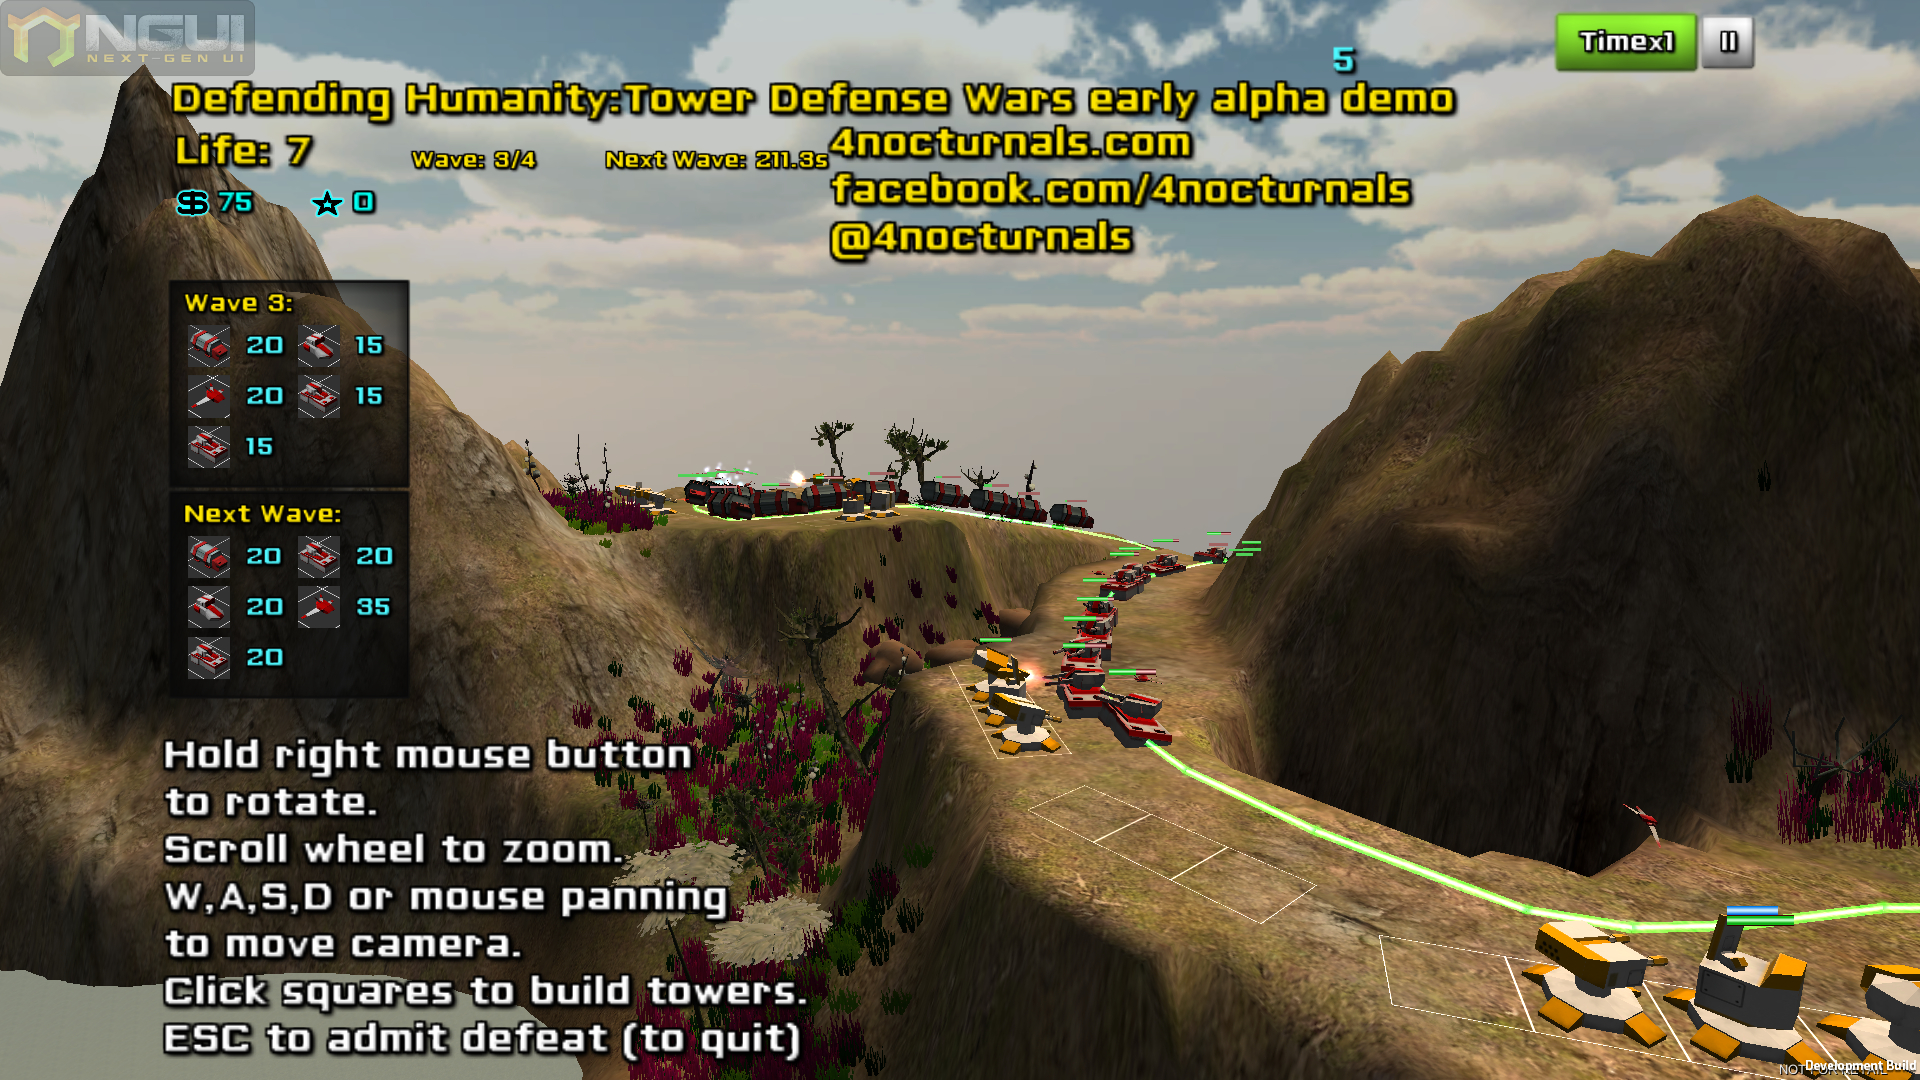 Early alpha unity 4 version image - Defending Humanity: Tower